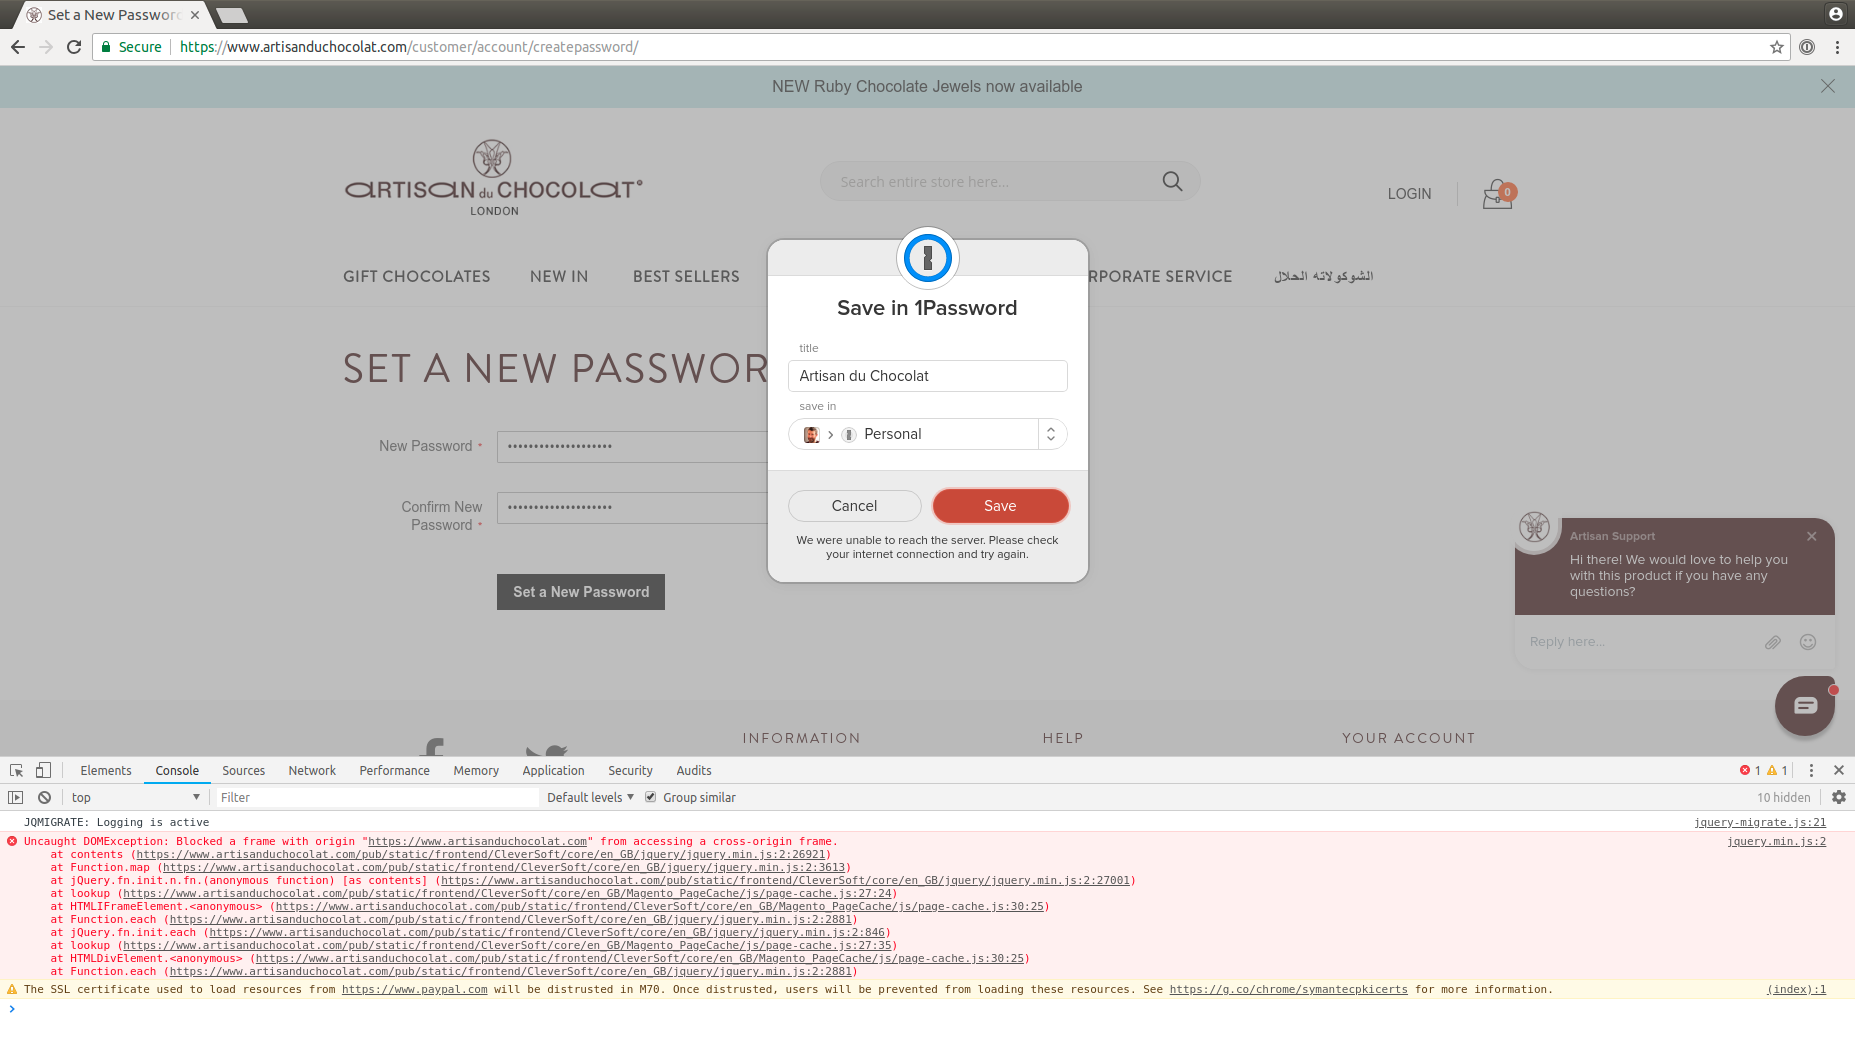 I get Unable to reach our server when trying to save password